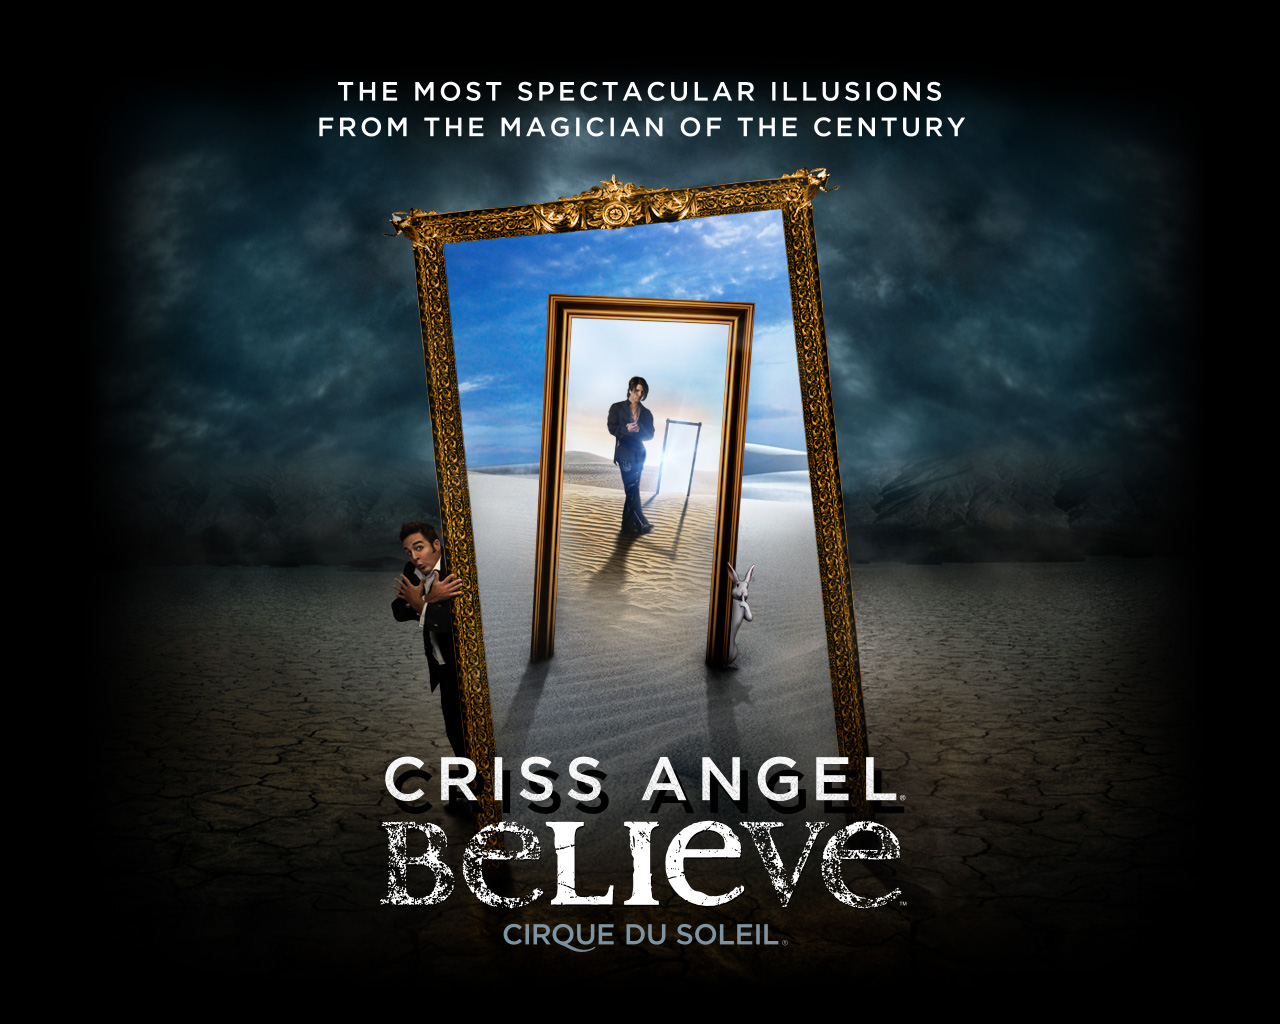 Criss Angel a must-see when in Vegas